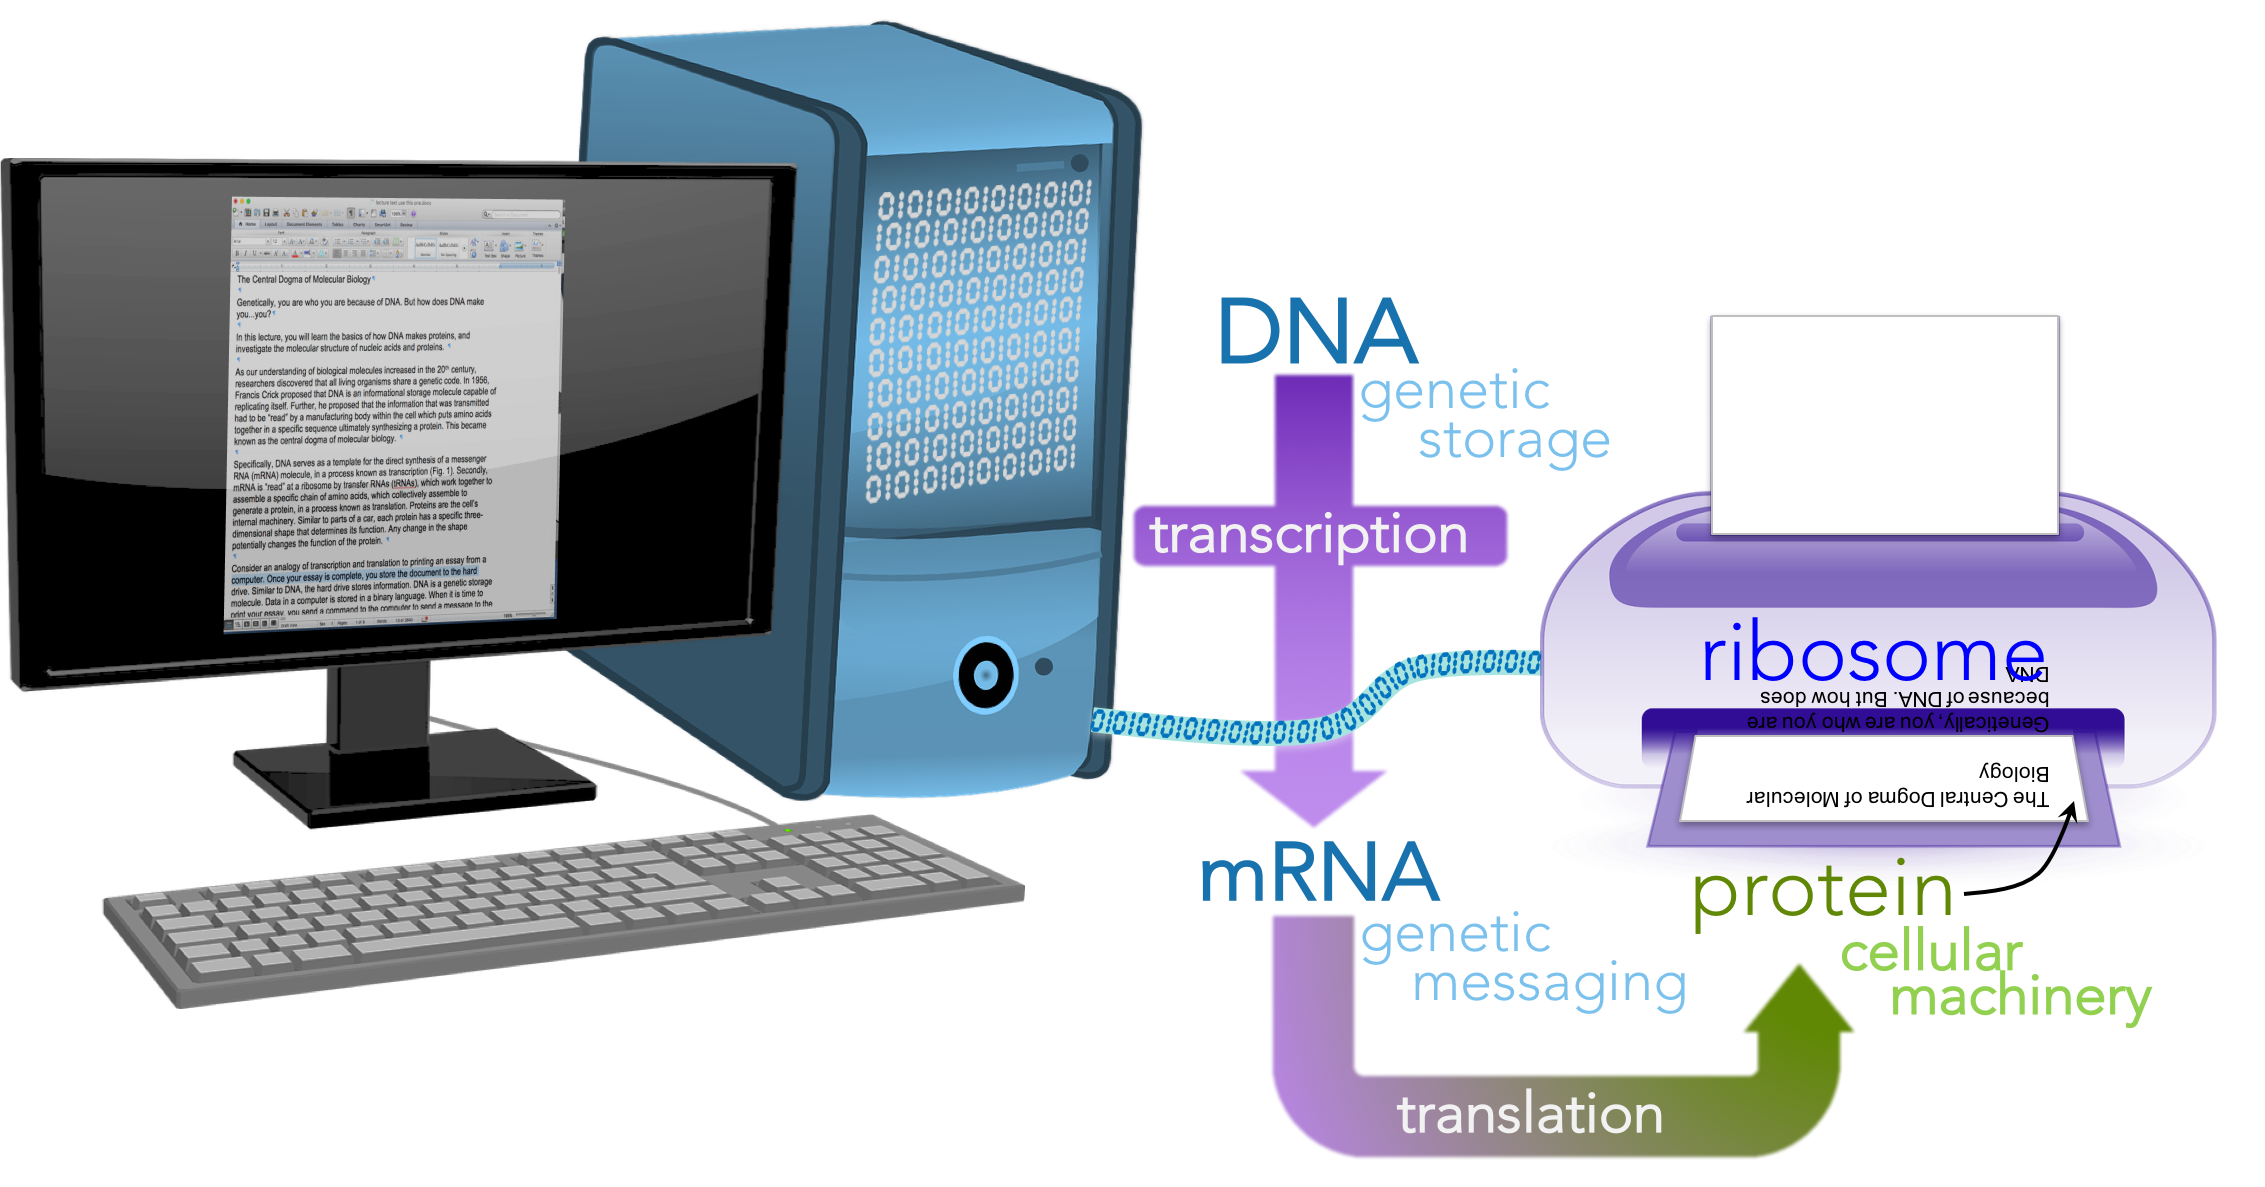 Figure 2.  Printing a paper as a metaphor for the central dogma.